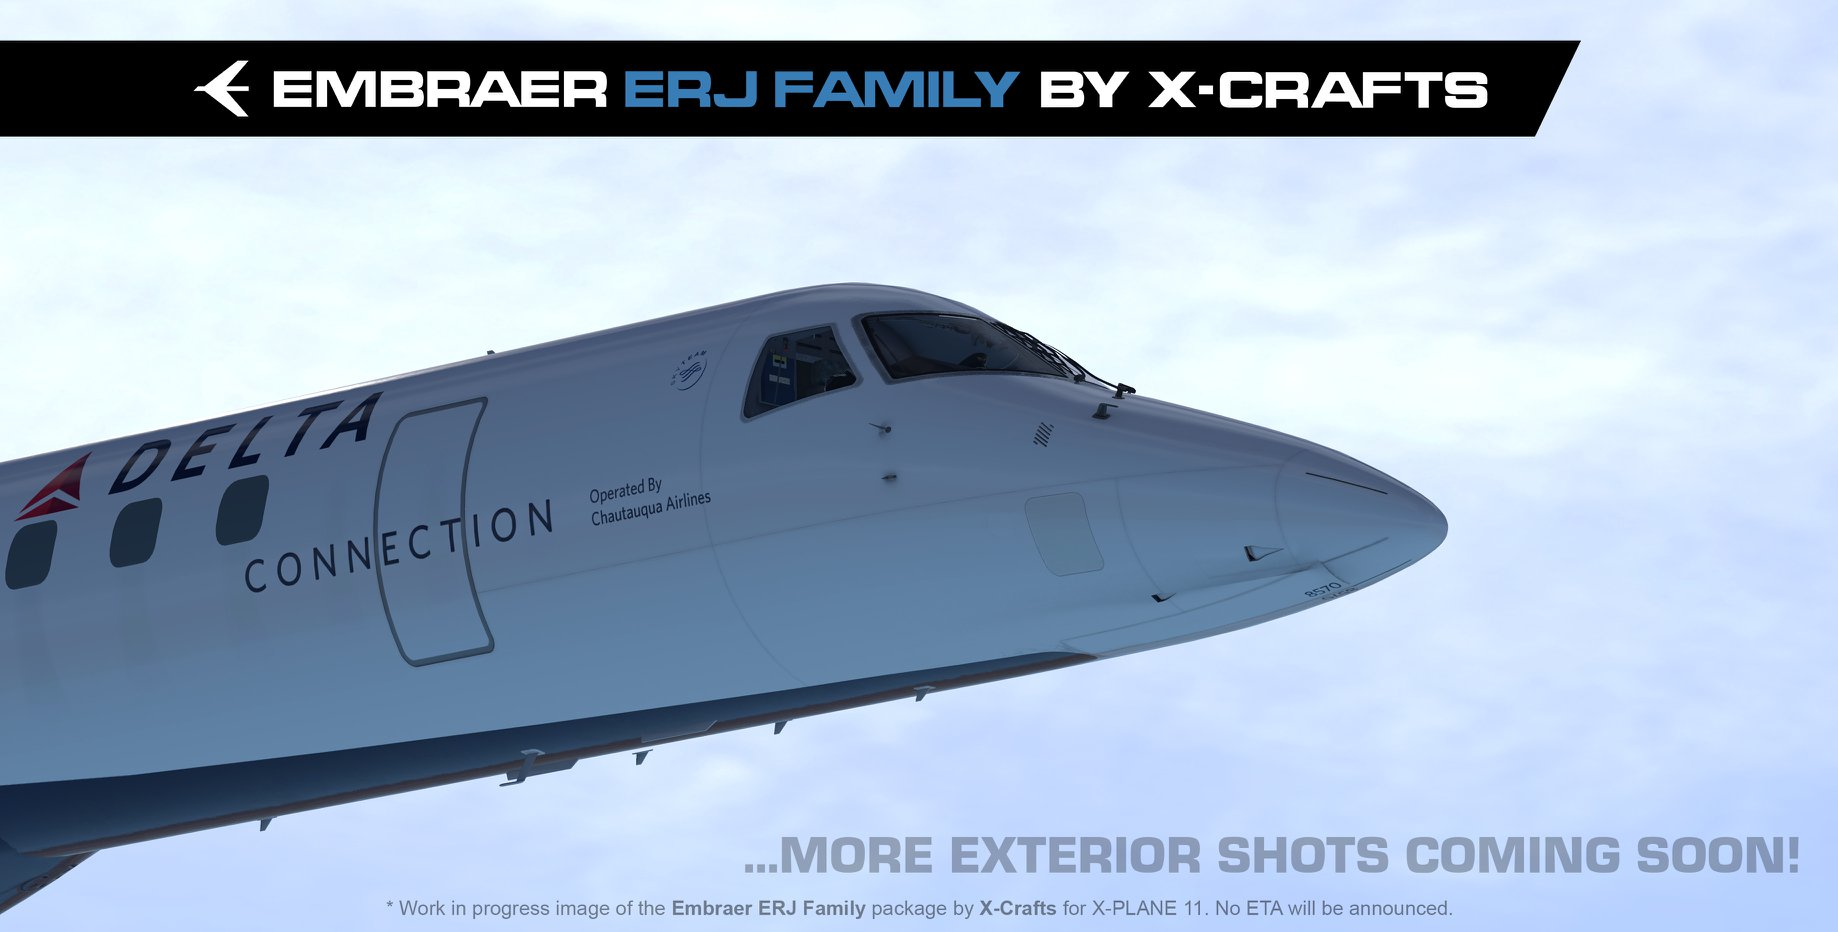 X-Crafts' ERJ Family: New Previews of Cockpit | Threshold